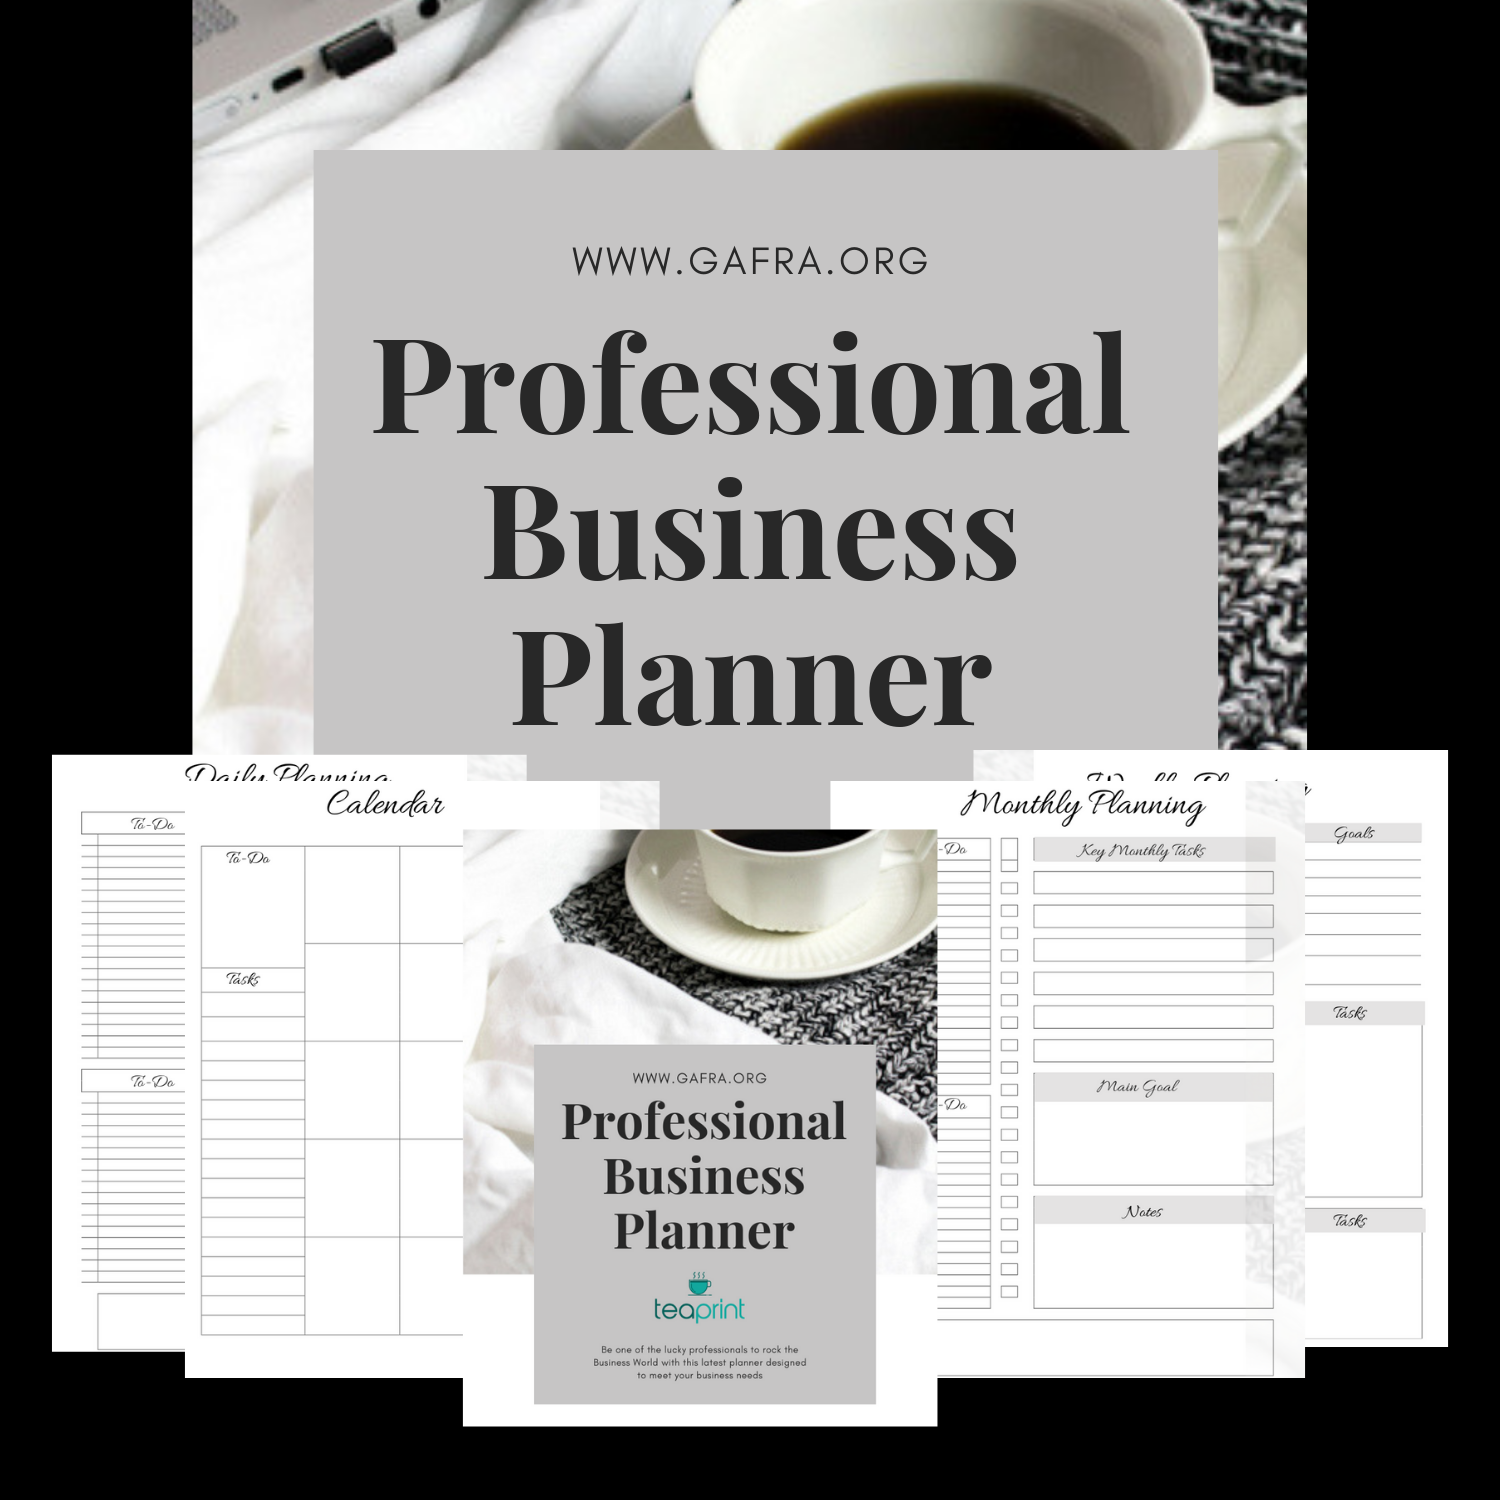 Professional Business Planner at www.etsy.com/shop/teaprint